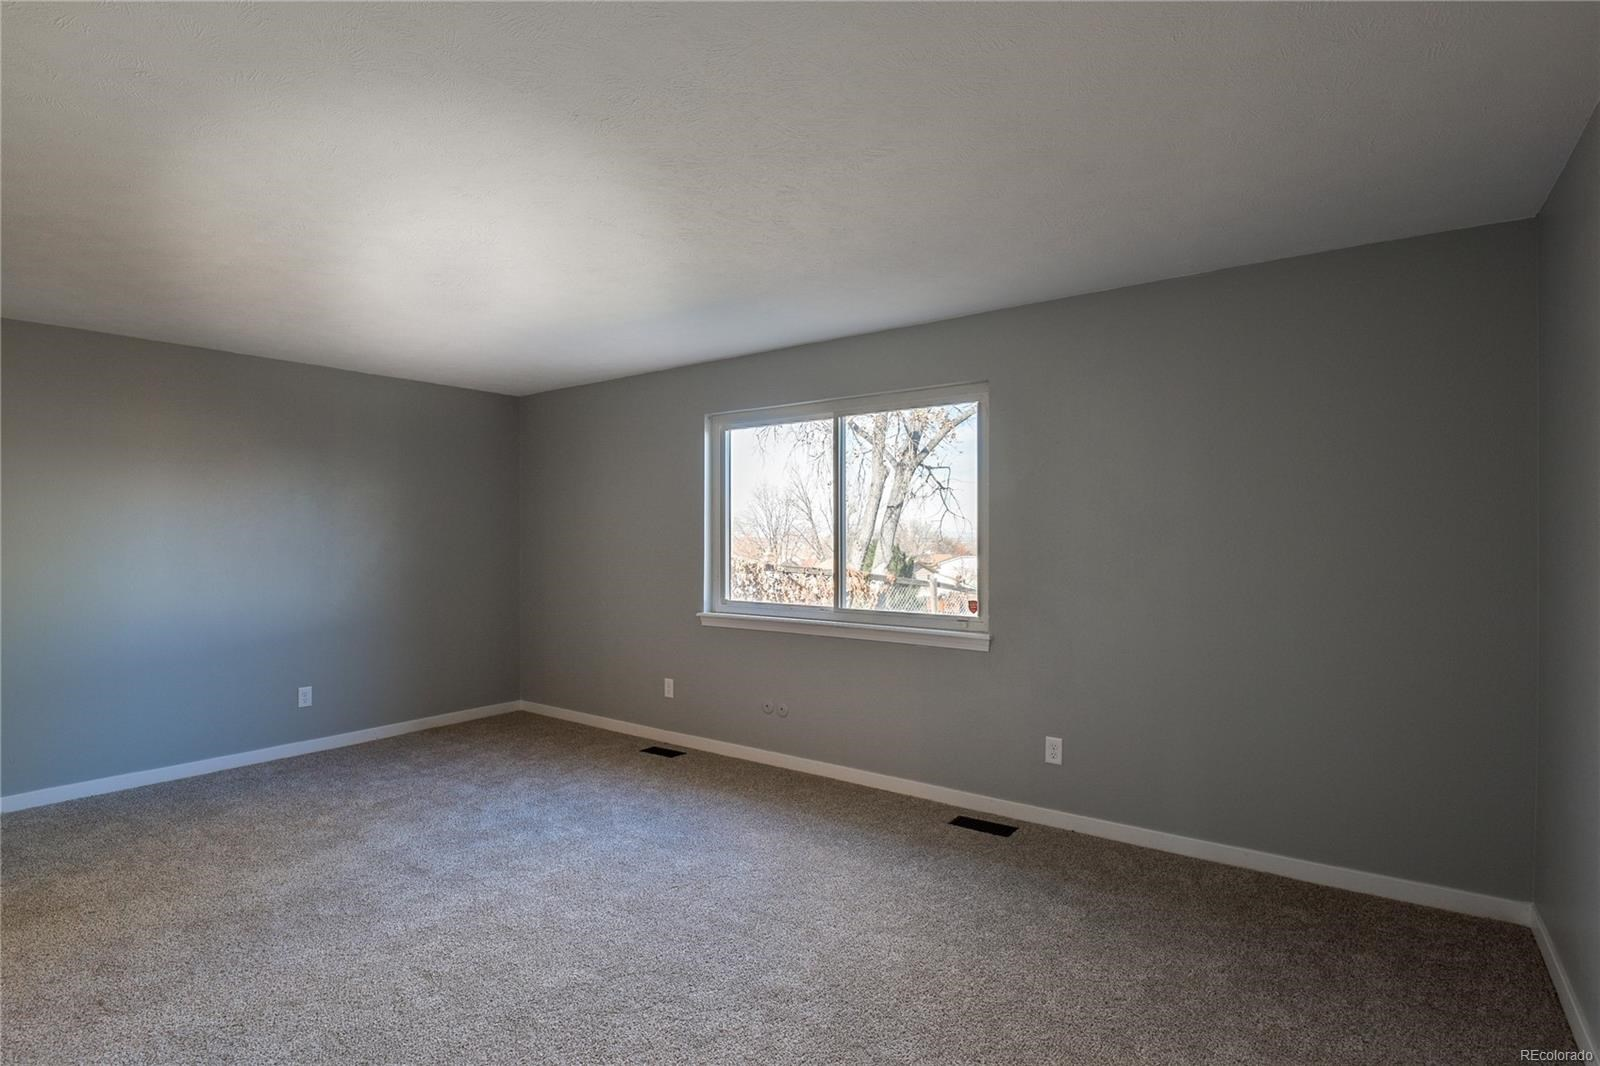 MLS# 8183776 - 30 - 2547 W 104th Circle, Westminster, CO 80234